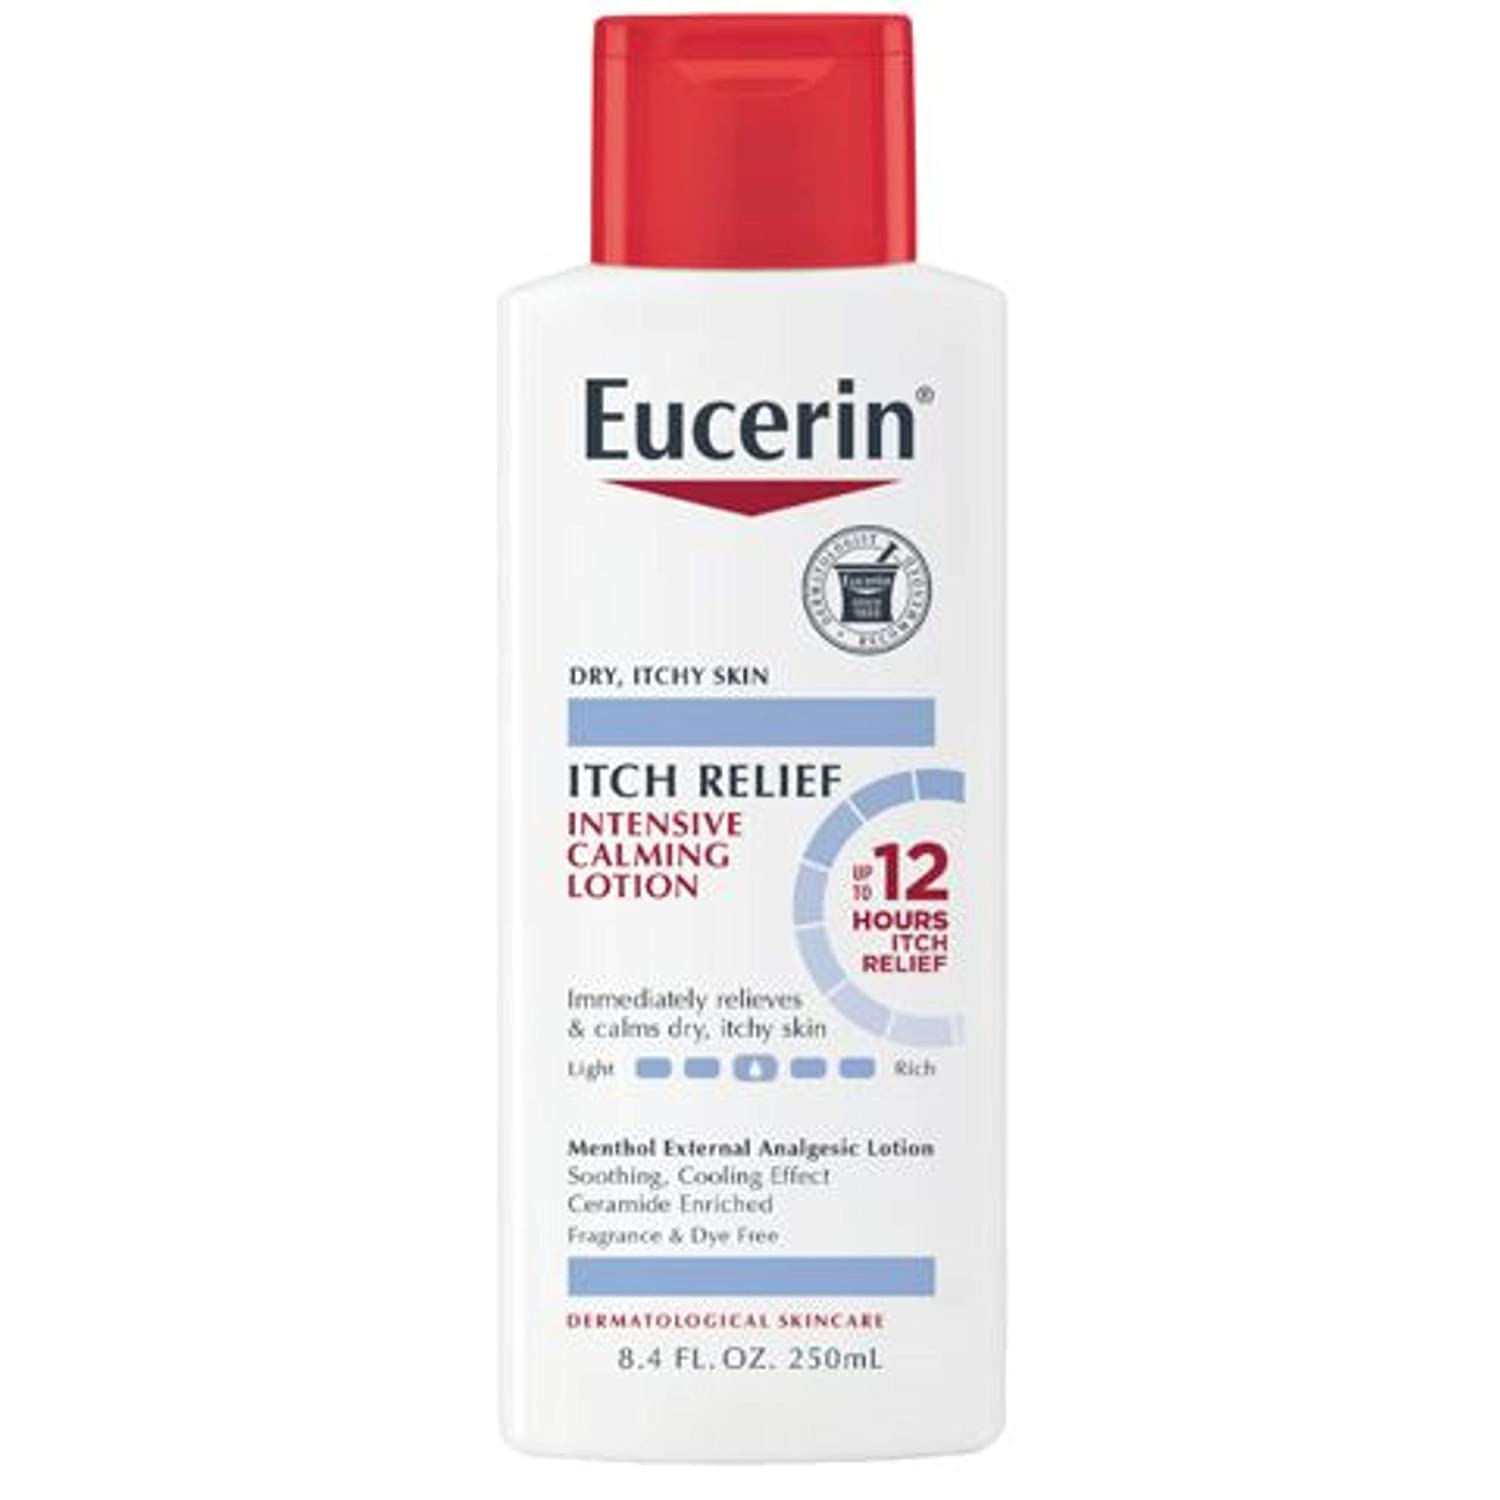 Eucerin Skin Calming Intensive Itch Relief Lotion, Body Lotion for Dry Itchy Skin - 8.4 Fl. Oz, 8.4 Fl Oz